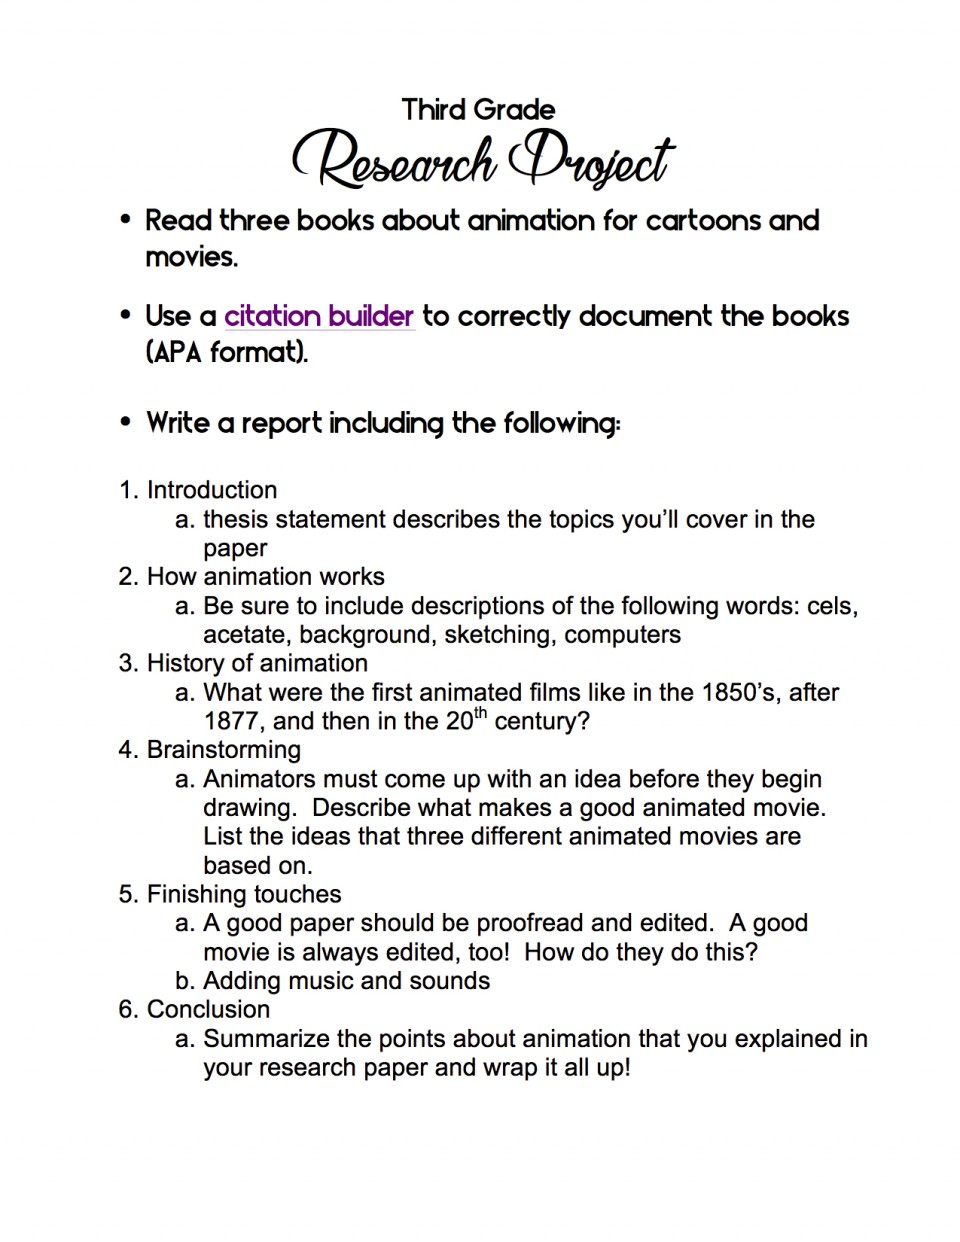 002 Research Paper Cancer Ideas 3rd Grade Shocking Breast Topic 960